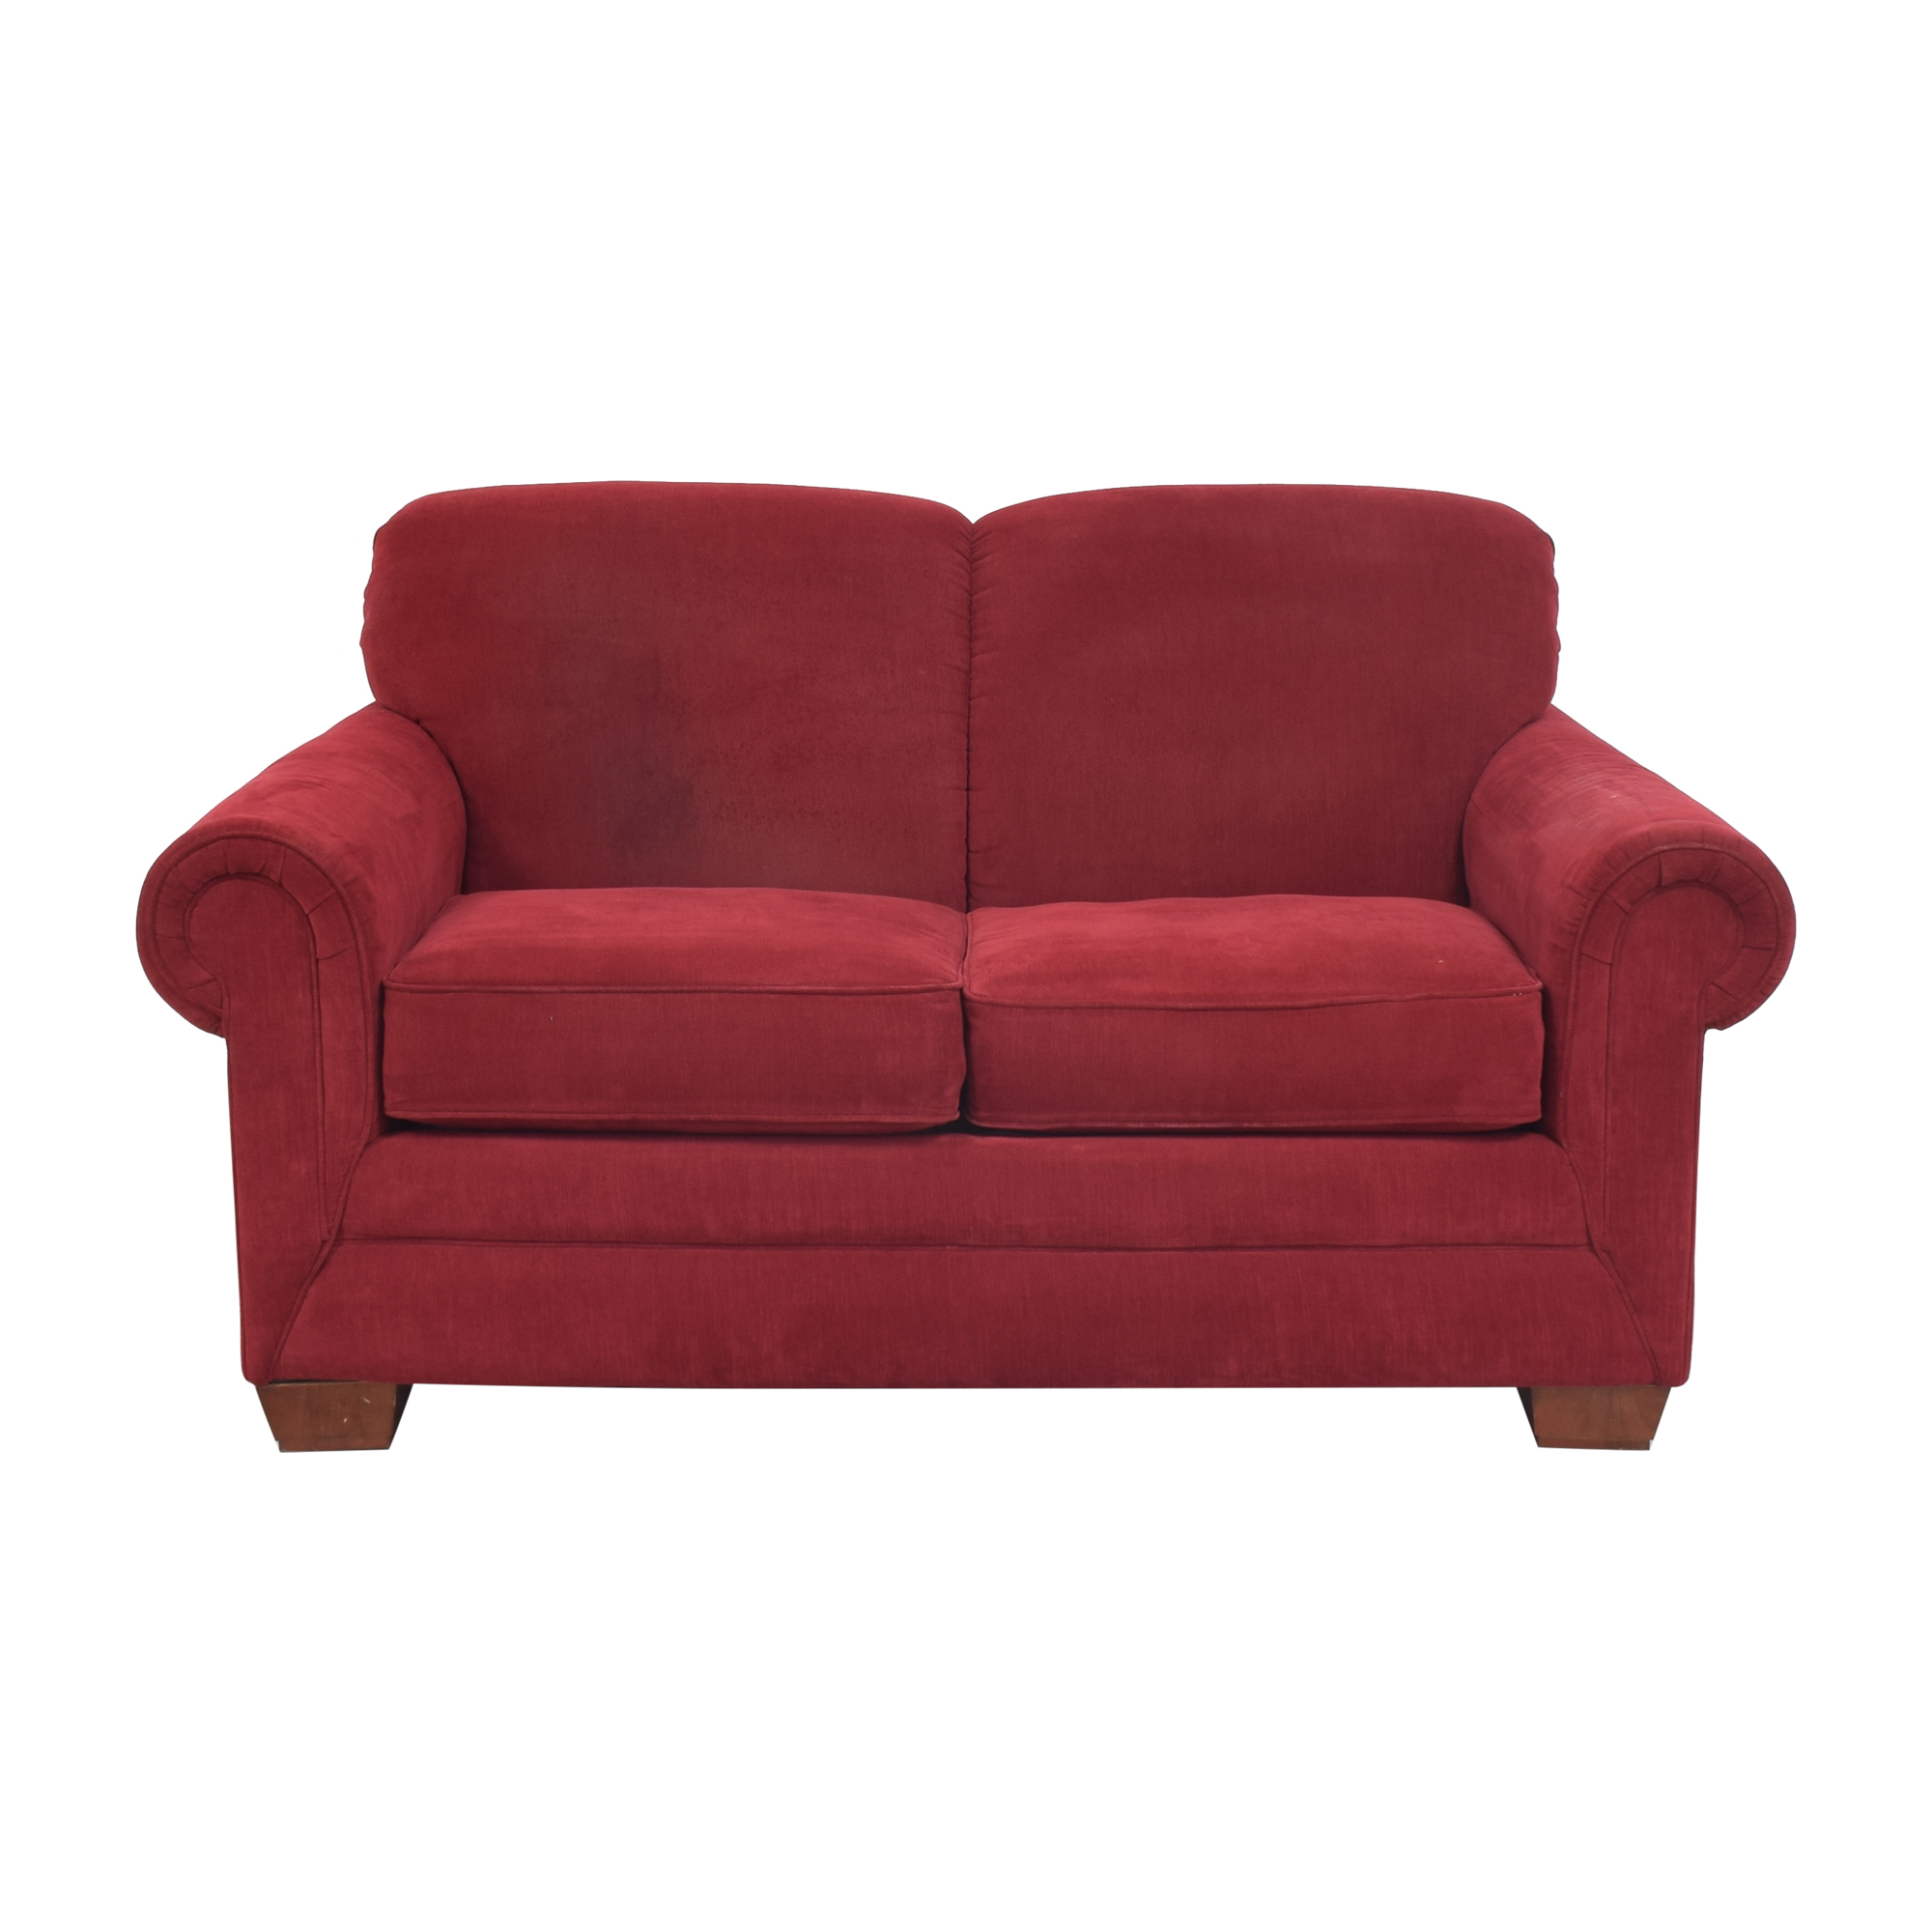 La-Z-Boy La-Z-Boy Mackenzie Loveseat for sale